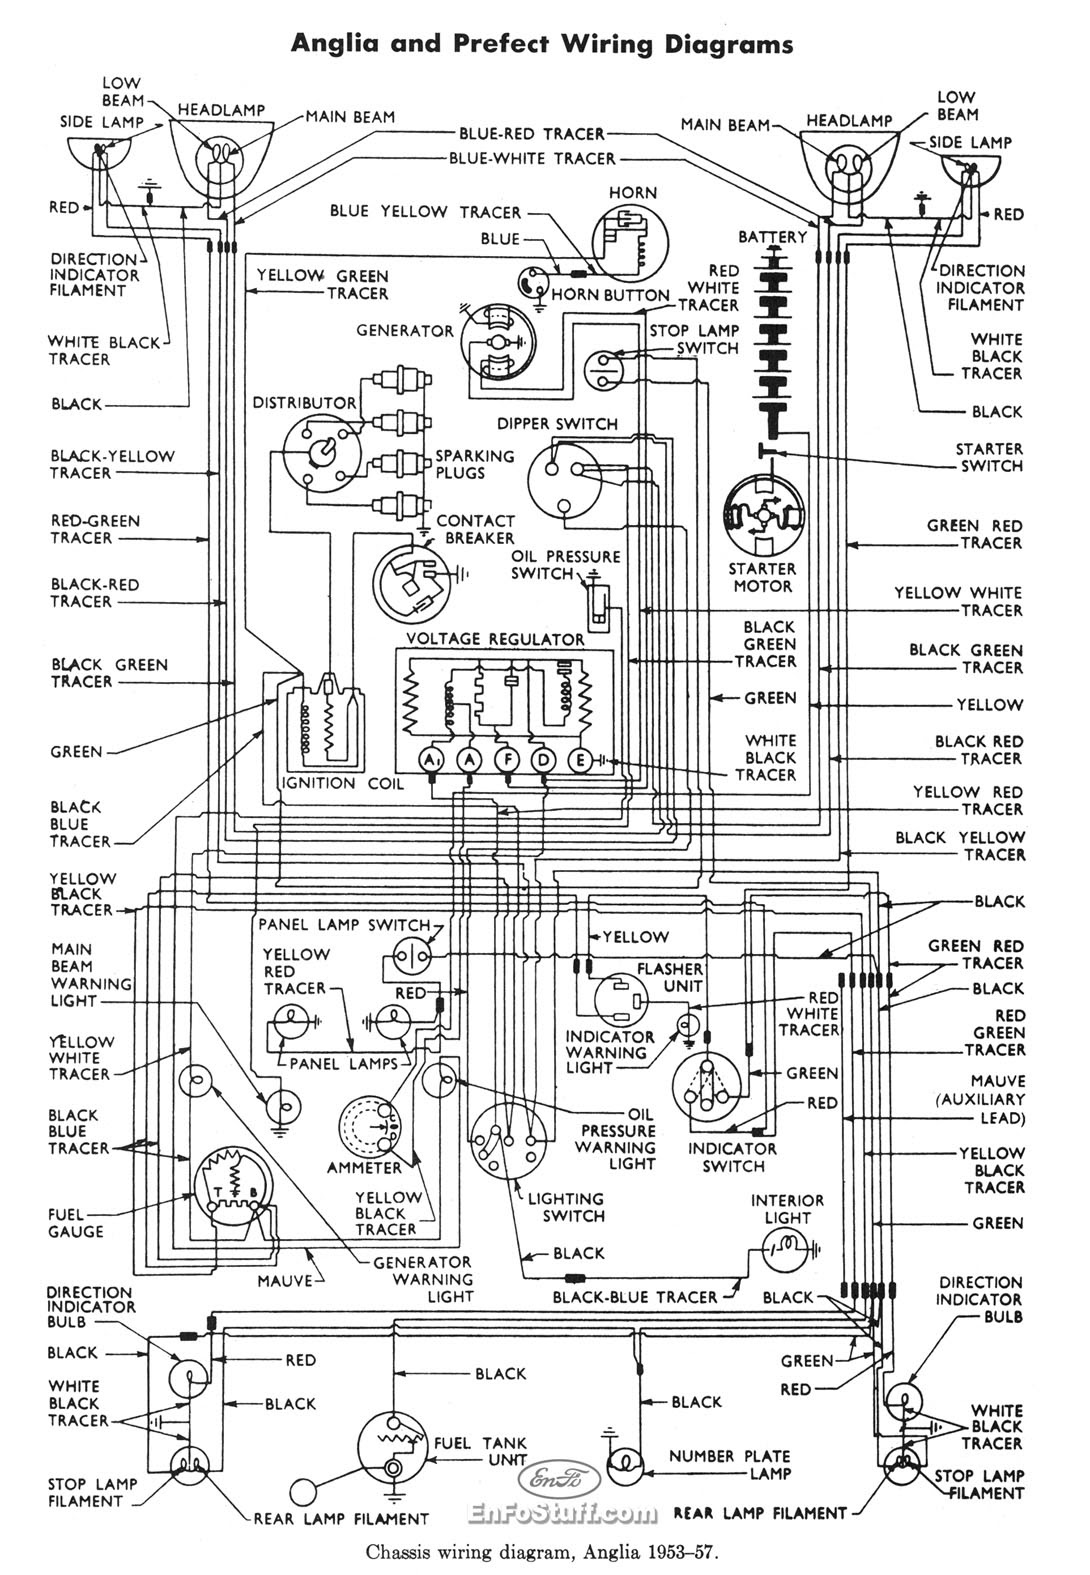 1987 Ford F800 Wiring Diagram Wiring Diagram Protocol A Protocol A Musikami It